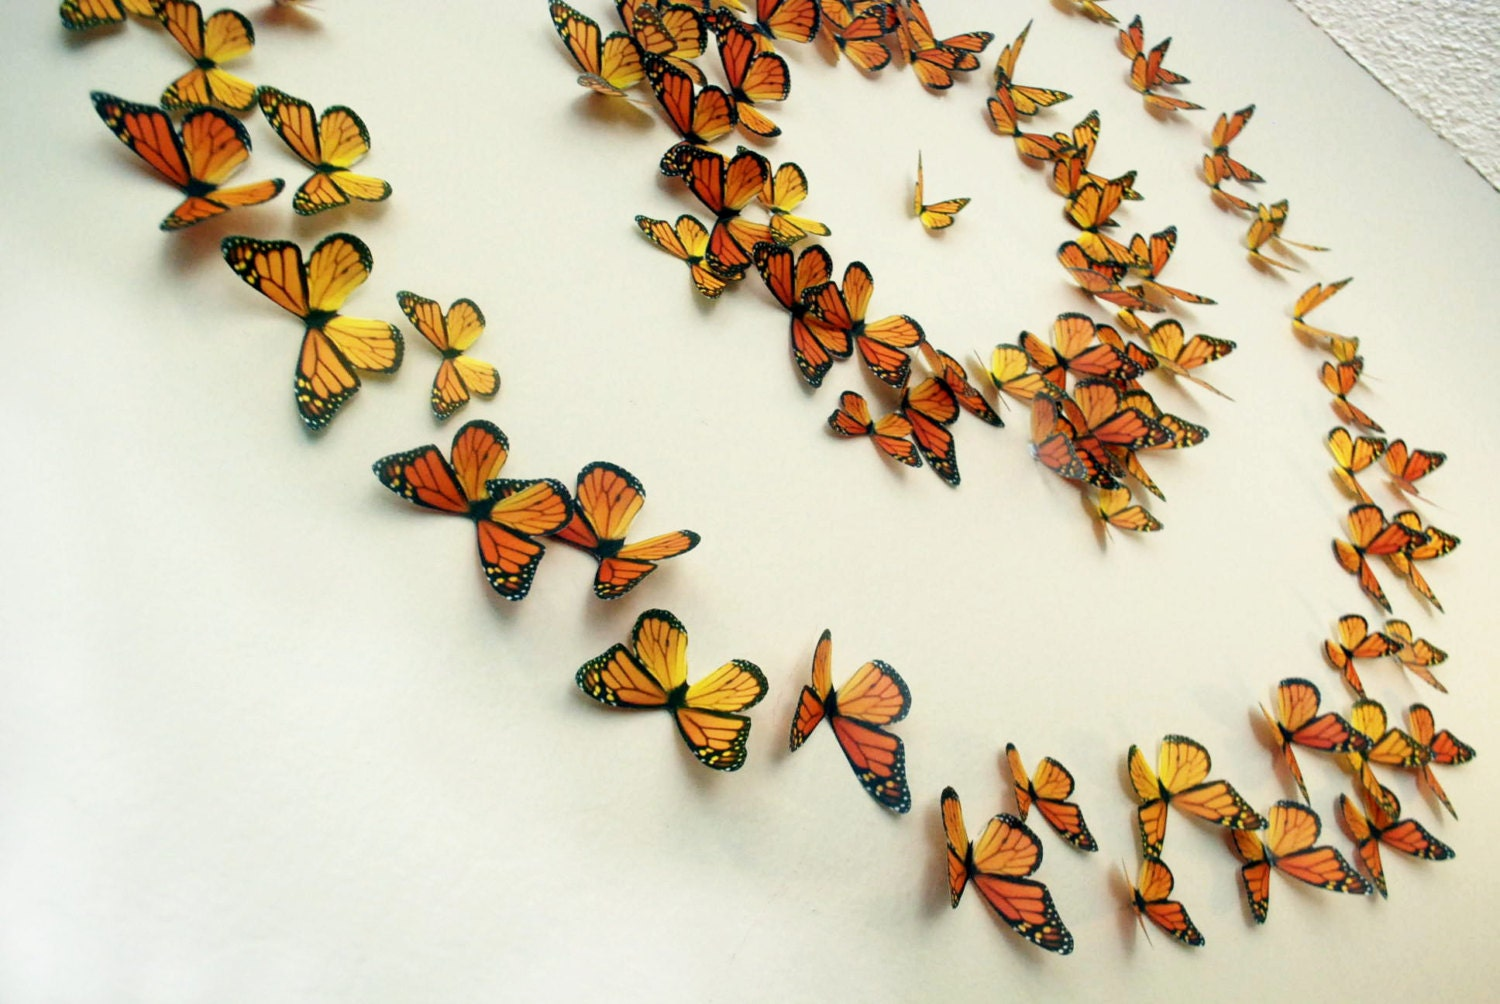 3D Wall Art Realistic Monarch Butterflies Set of 100